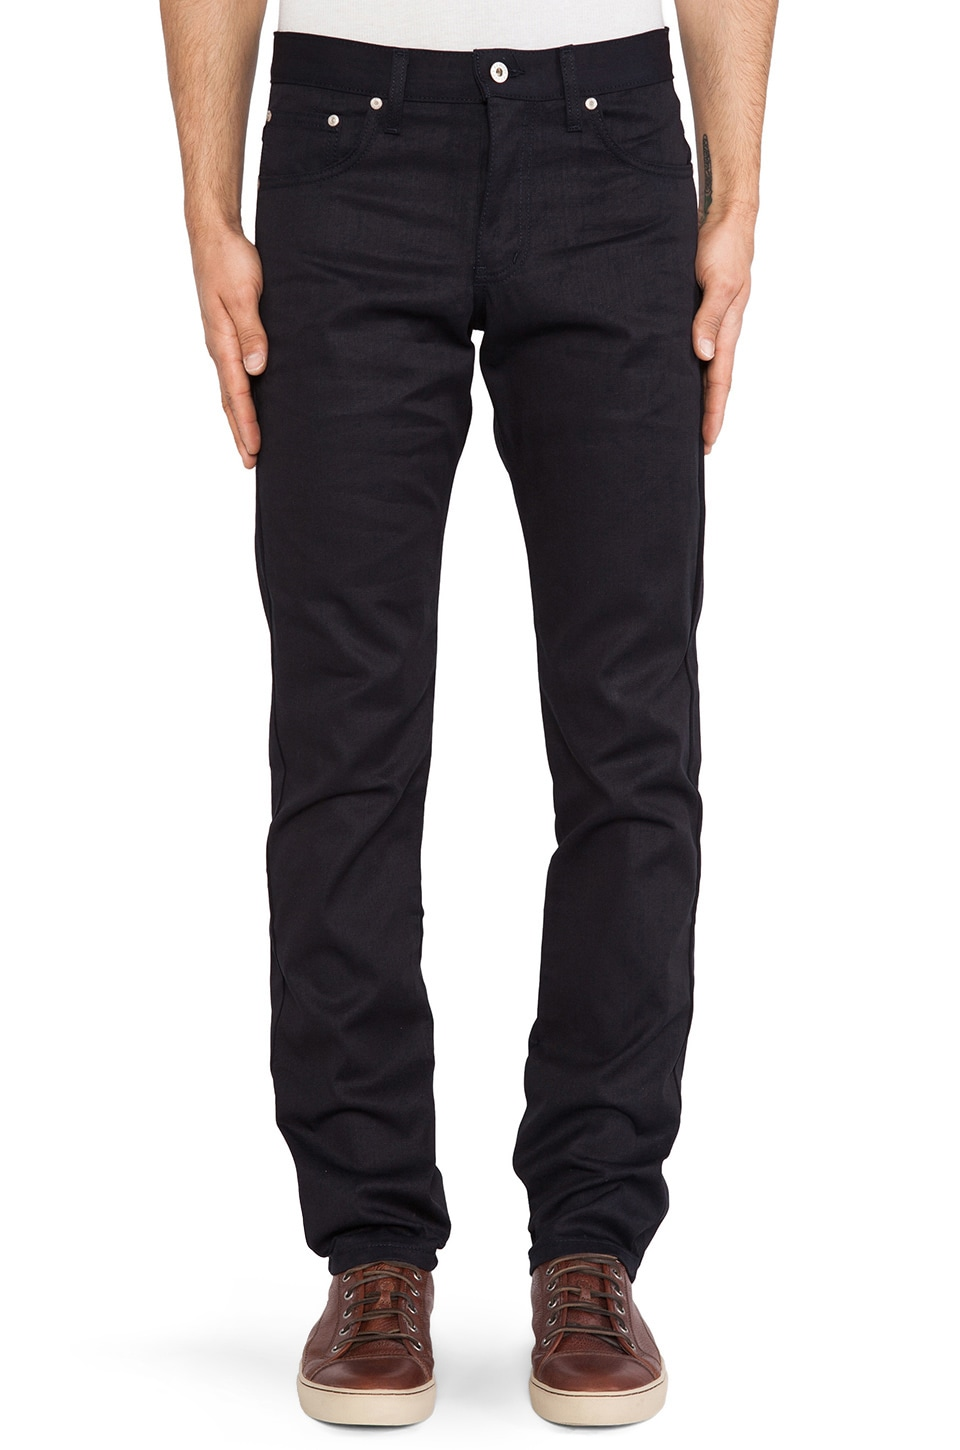 Naked & Famous Denim Skinny Guy Lightweight Indigo/Indigo 8 oz. in Indigo